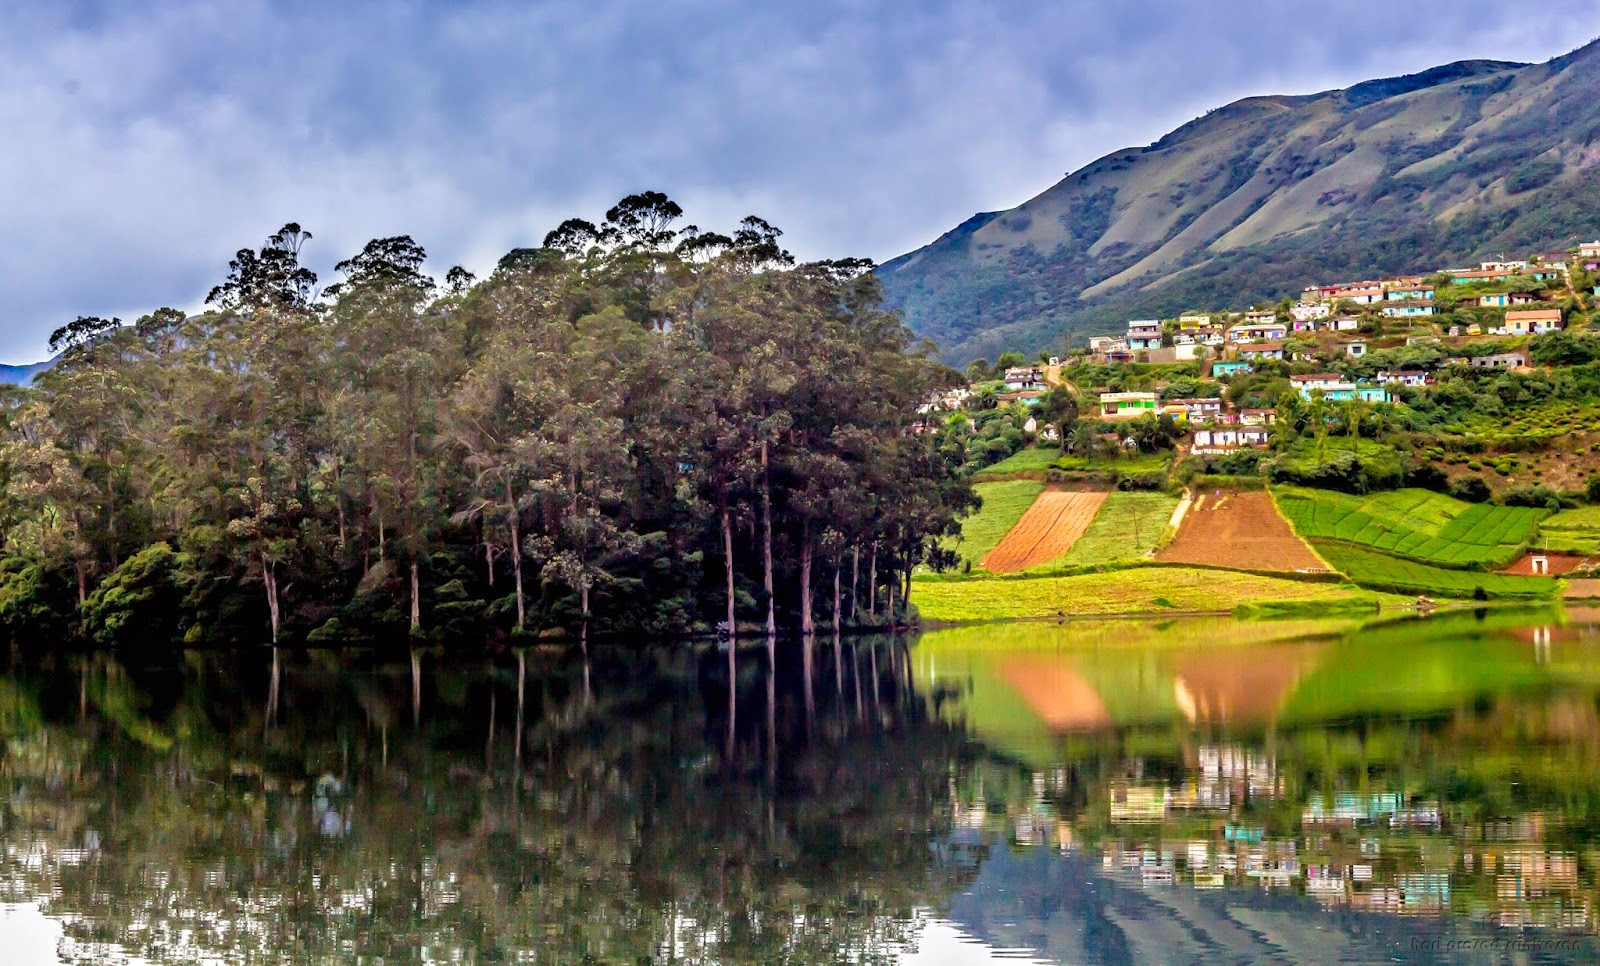 Landscape photo near Avalanche lake Ooty with a mountain in the background and houses on the slope. Lake in the foreground.